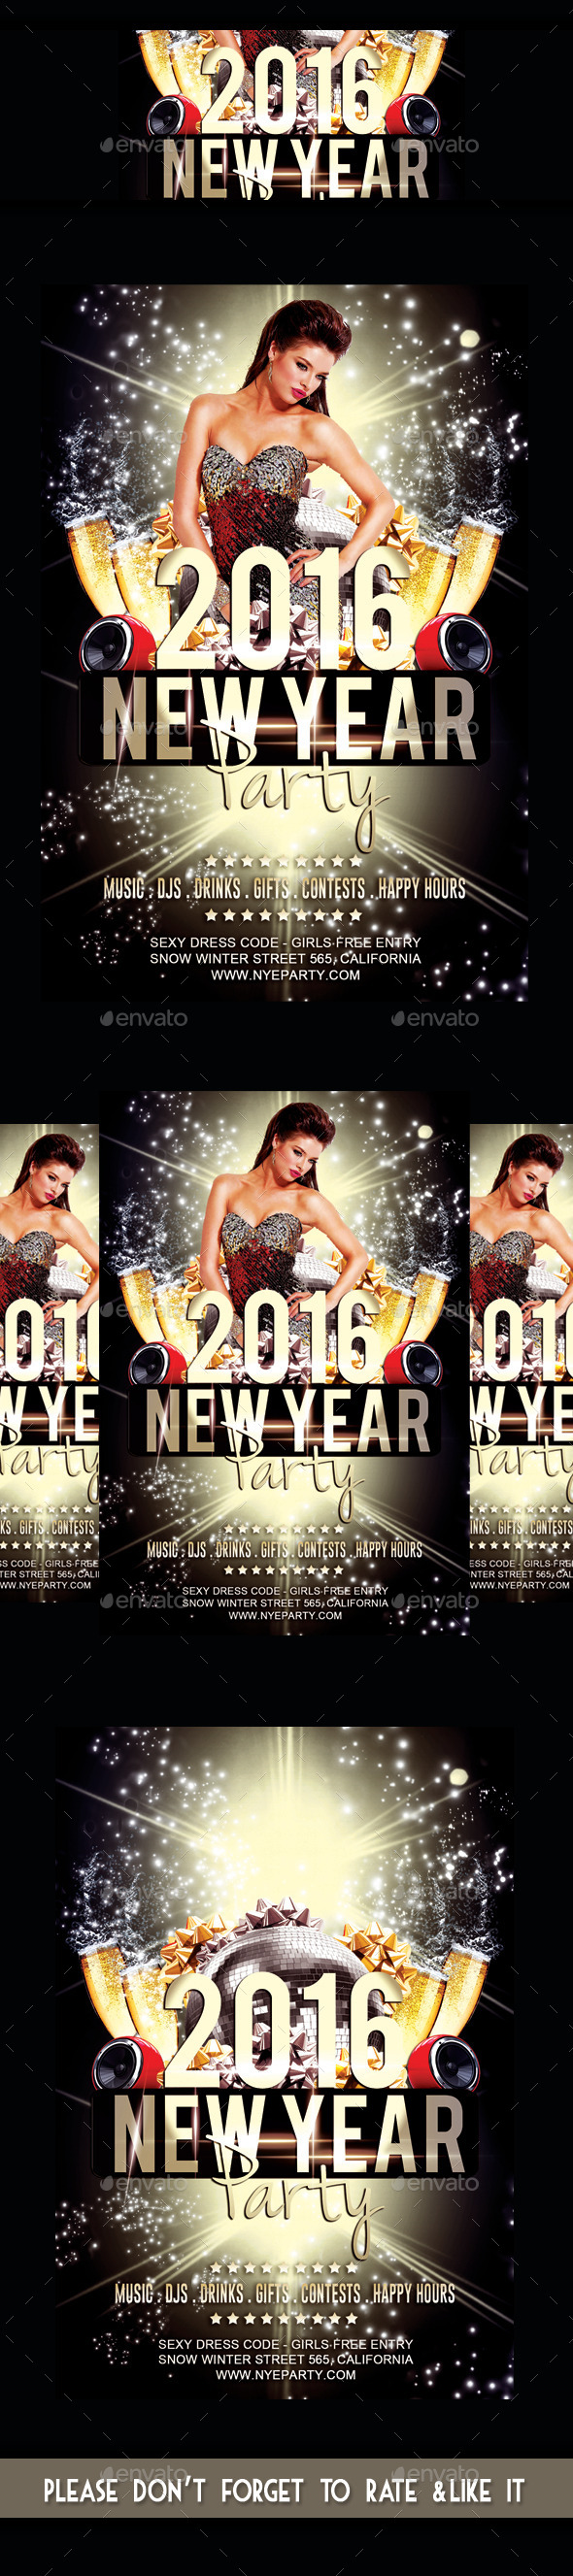 New Year 2016 Party Flyer - Flyers Print Templates